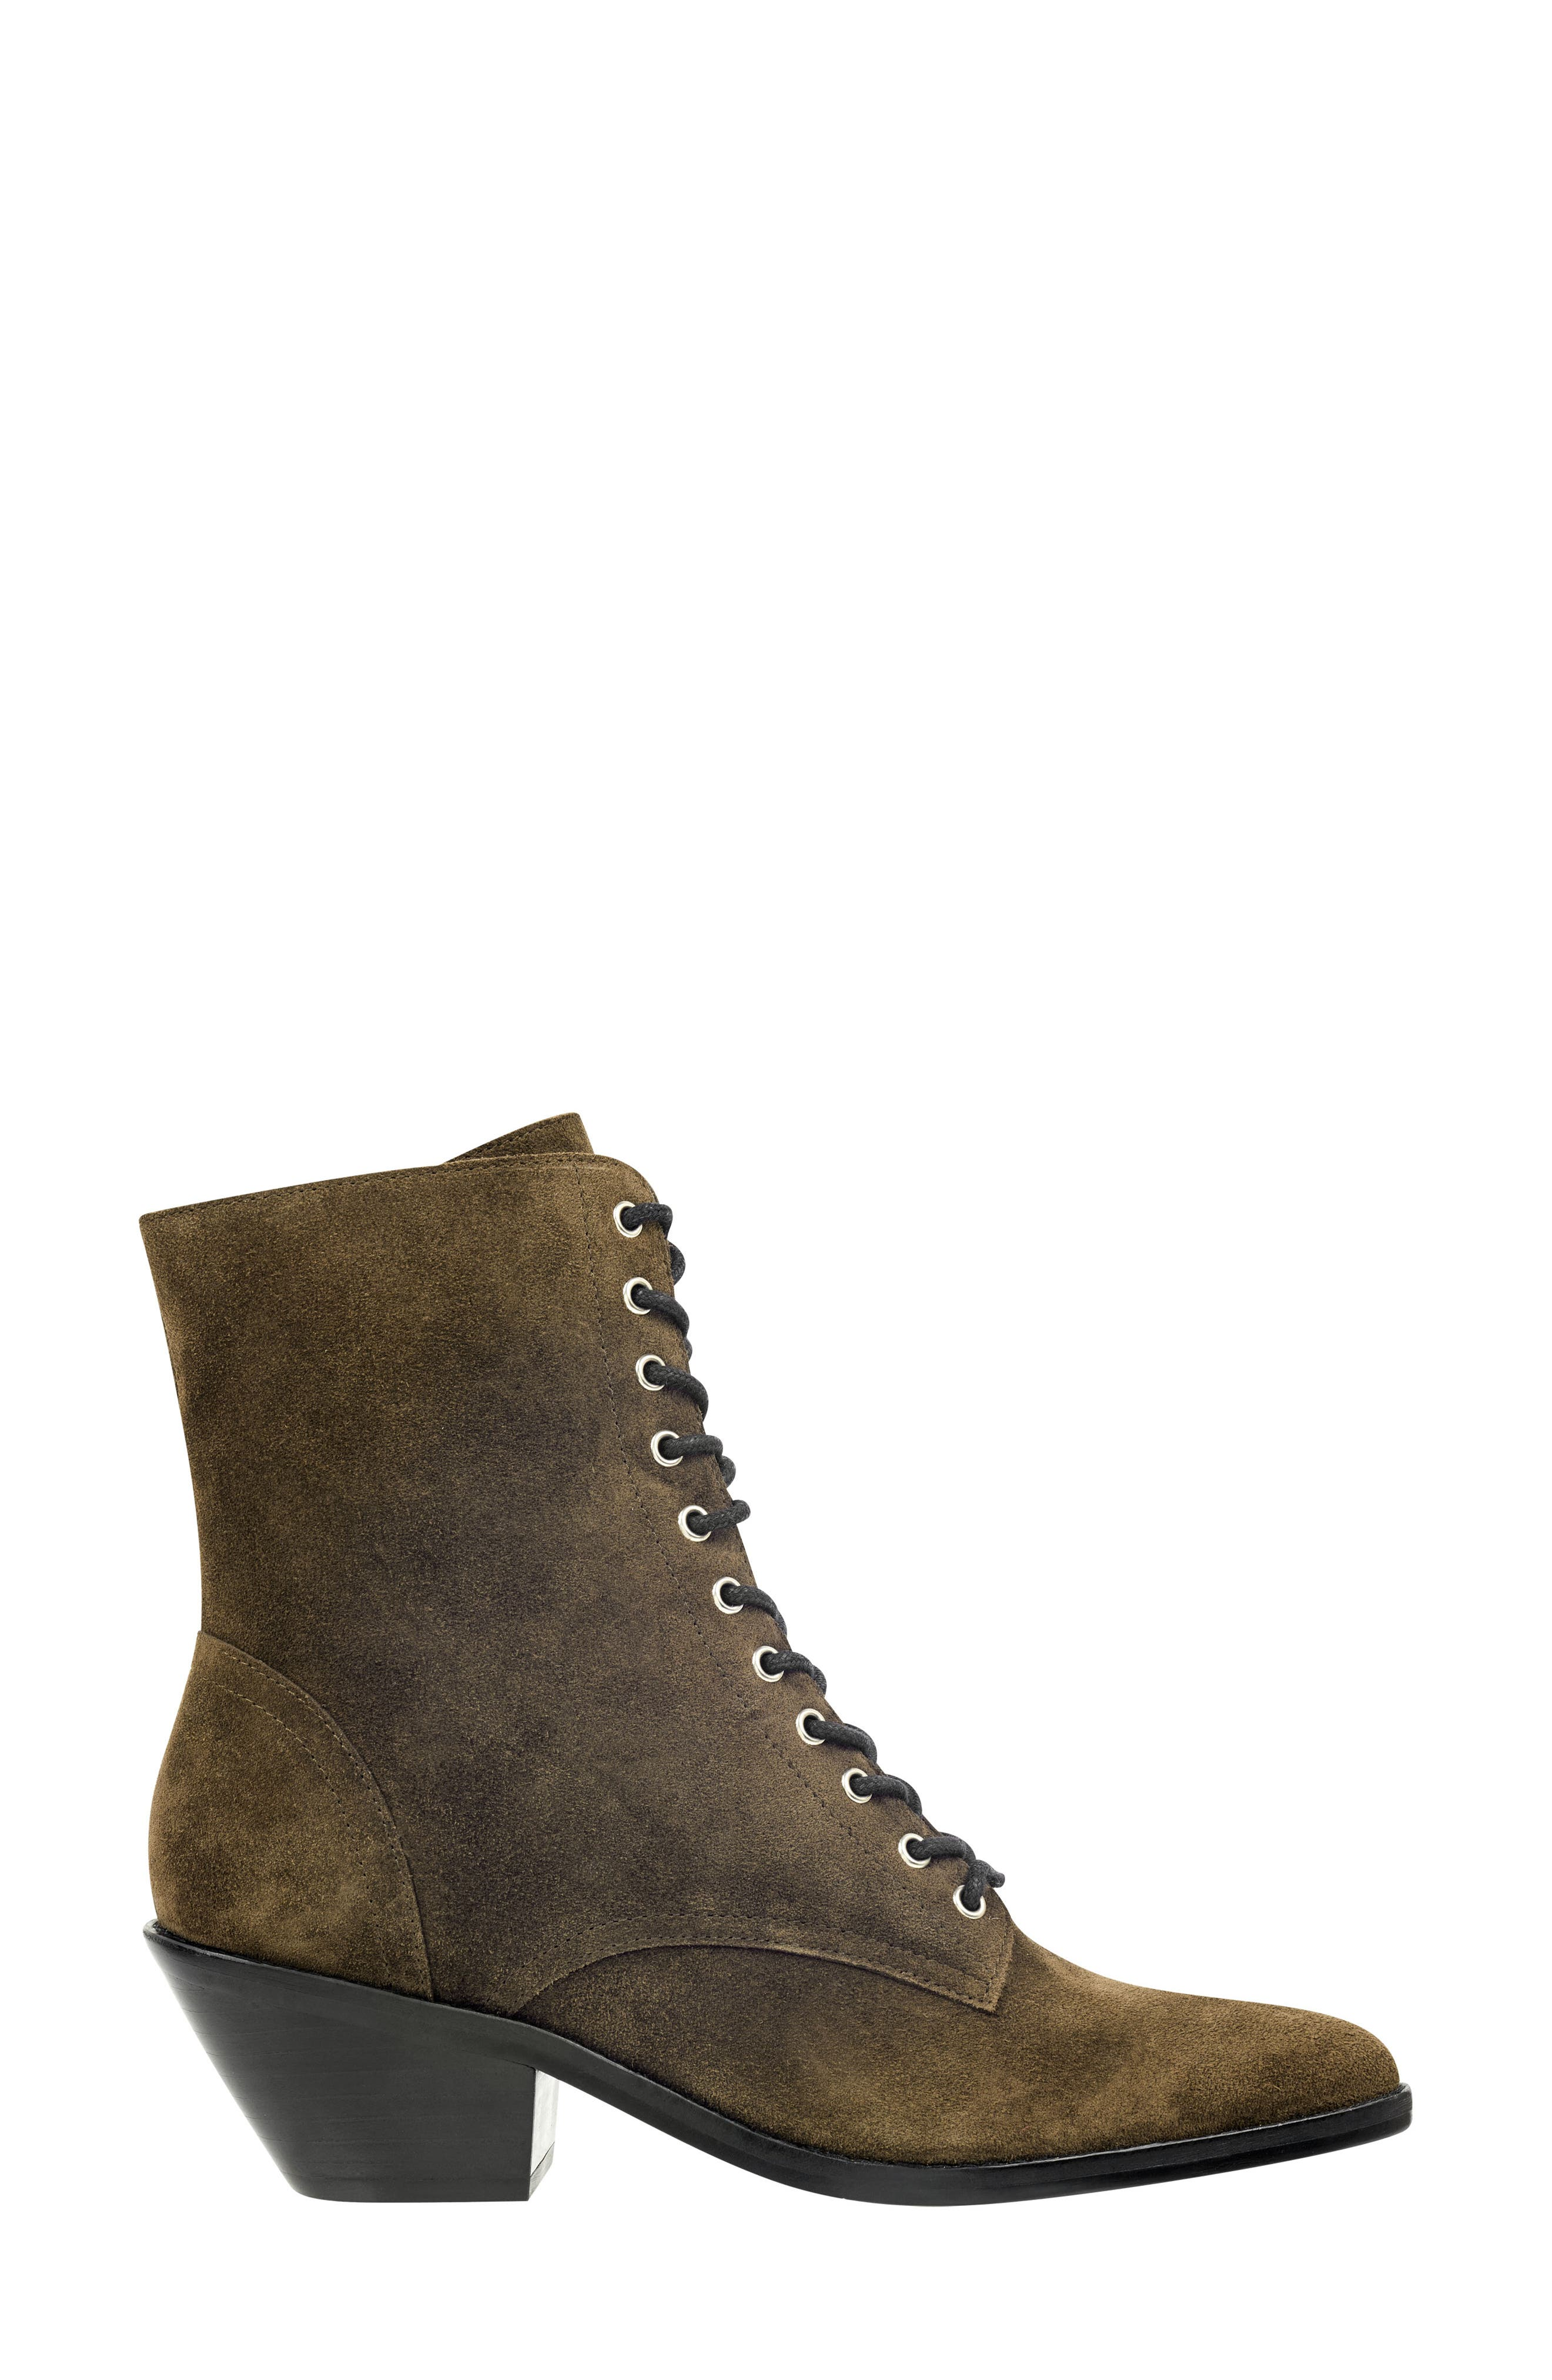 Bowie Lace-Up Boot,                             Alternate thumbnail 3, color,                             OLIVE SUEDE